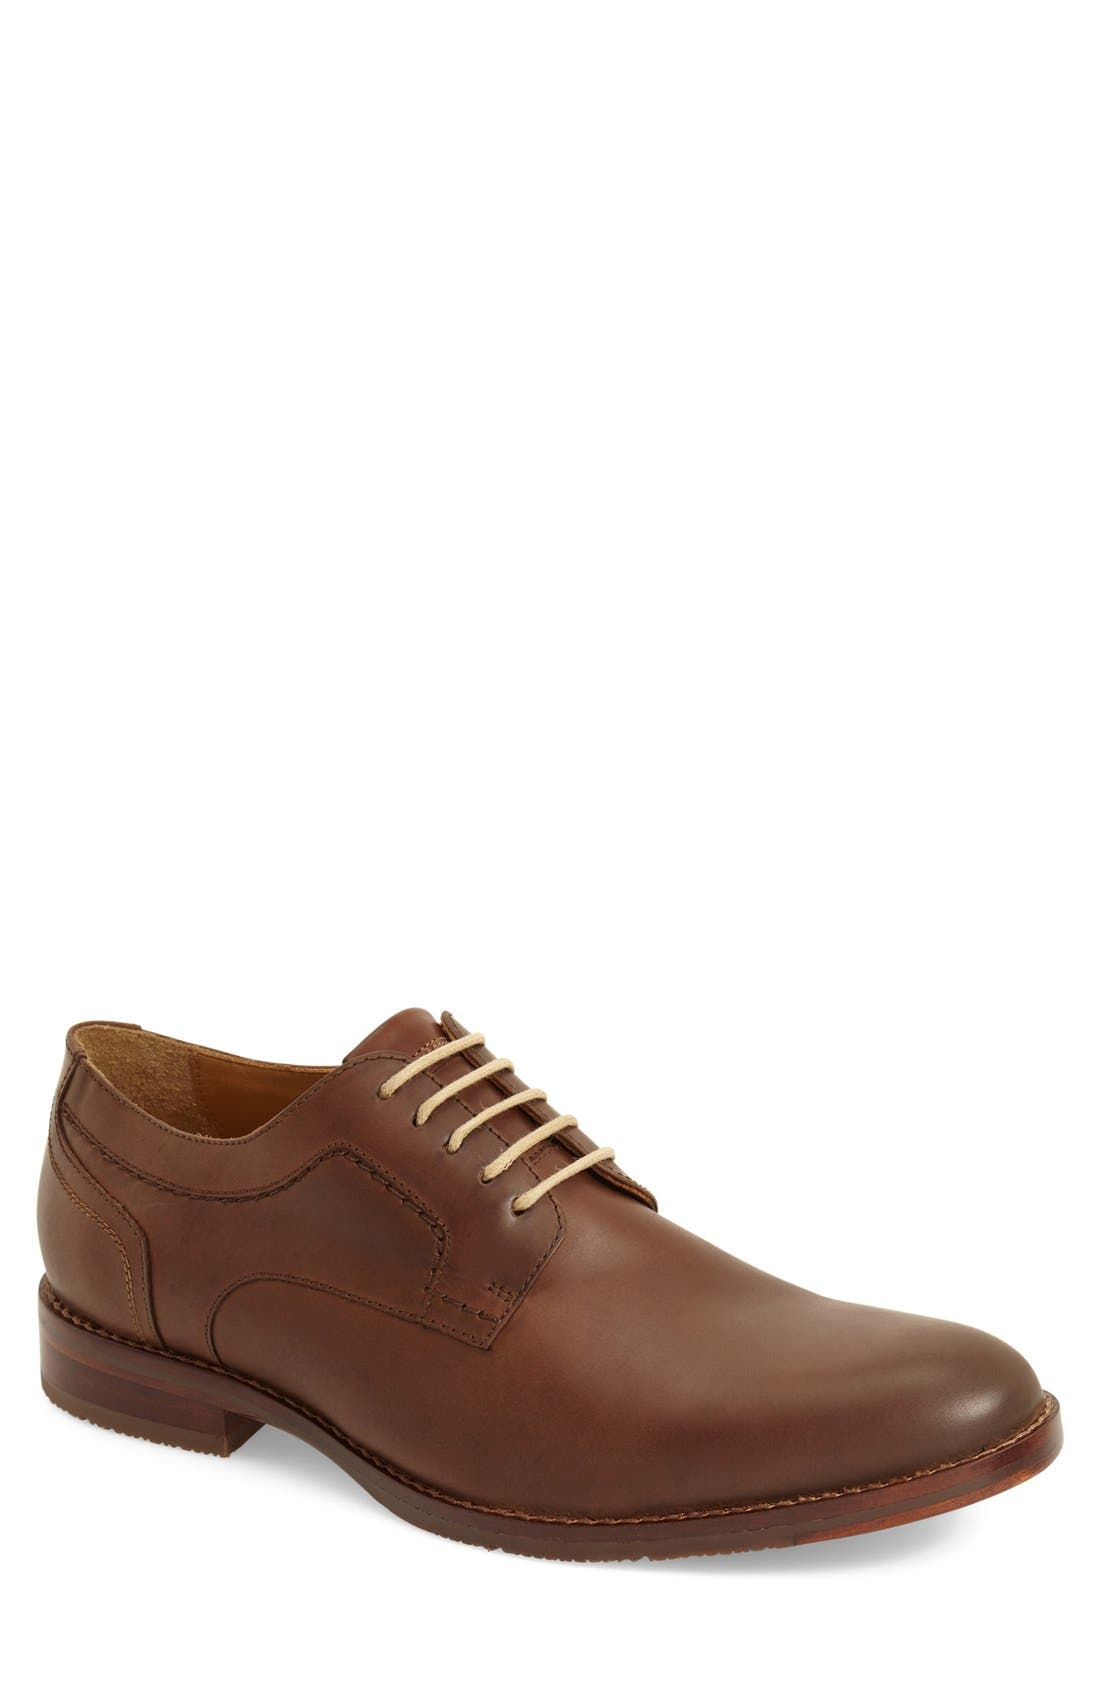 JOHNSTON & MURPHY 'Garner' Plain Toe Derby